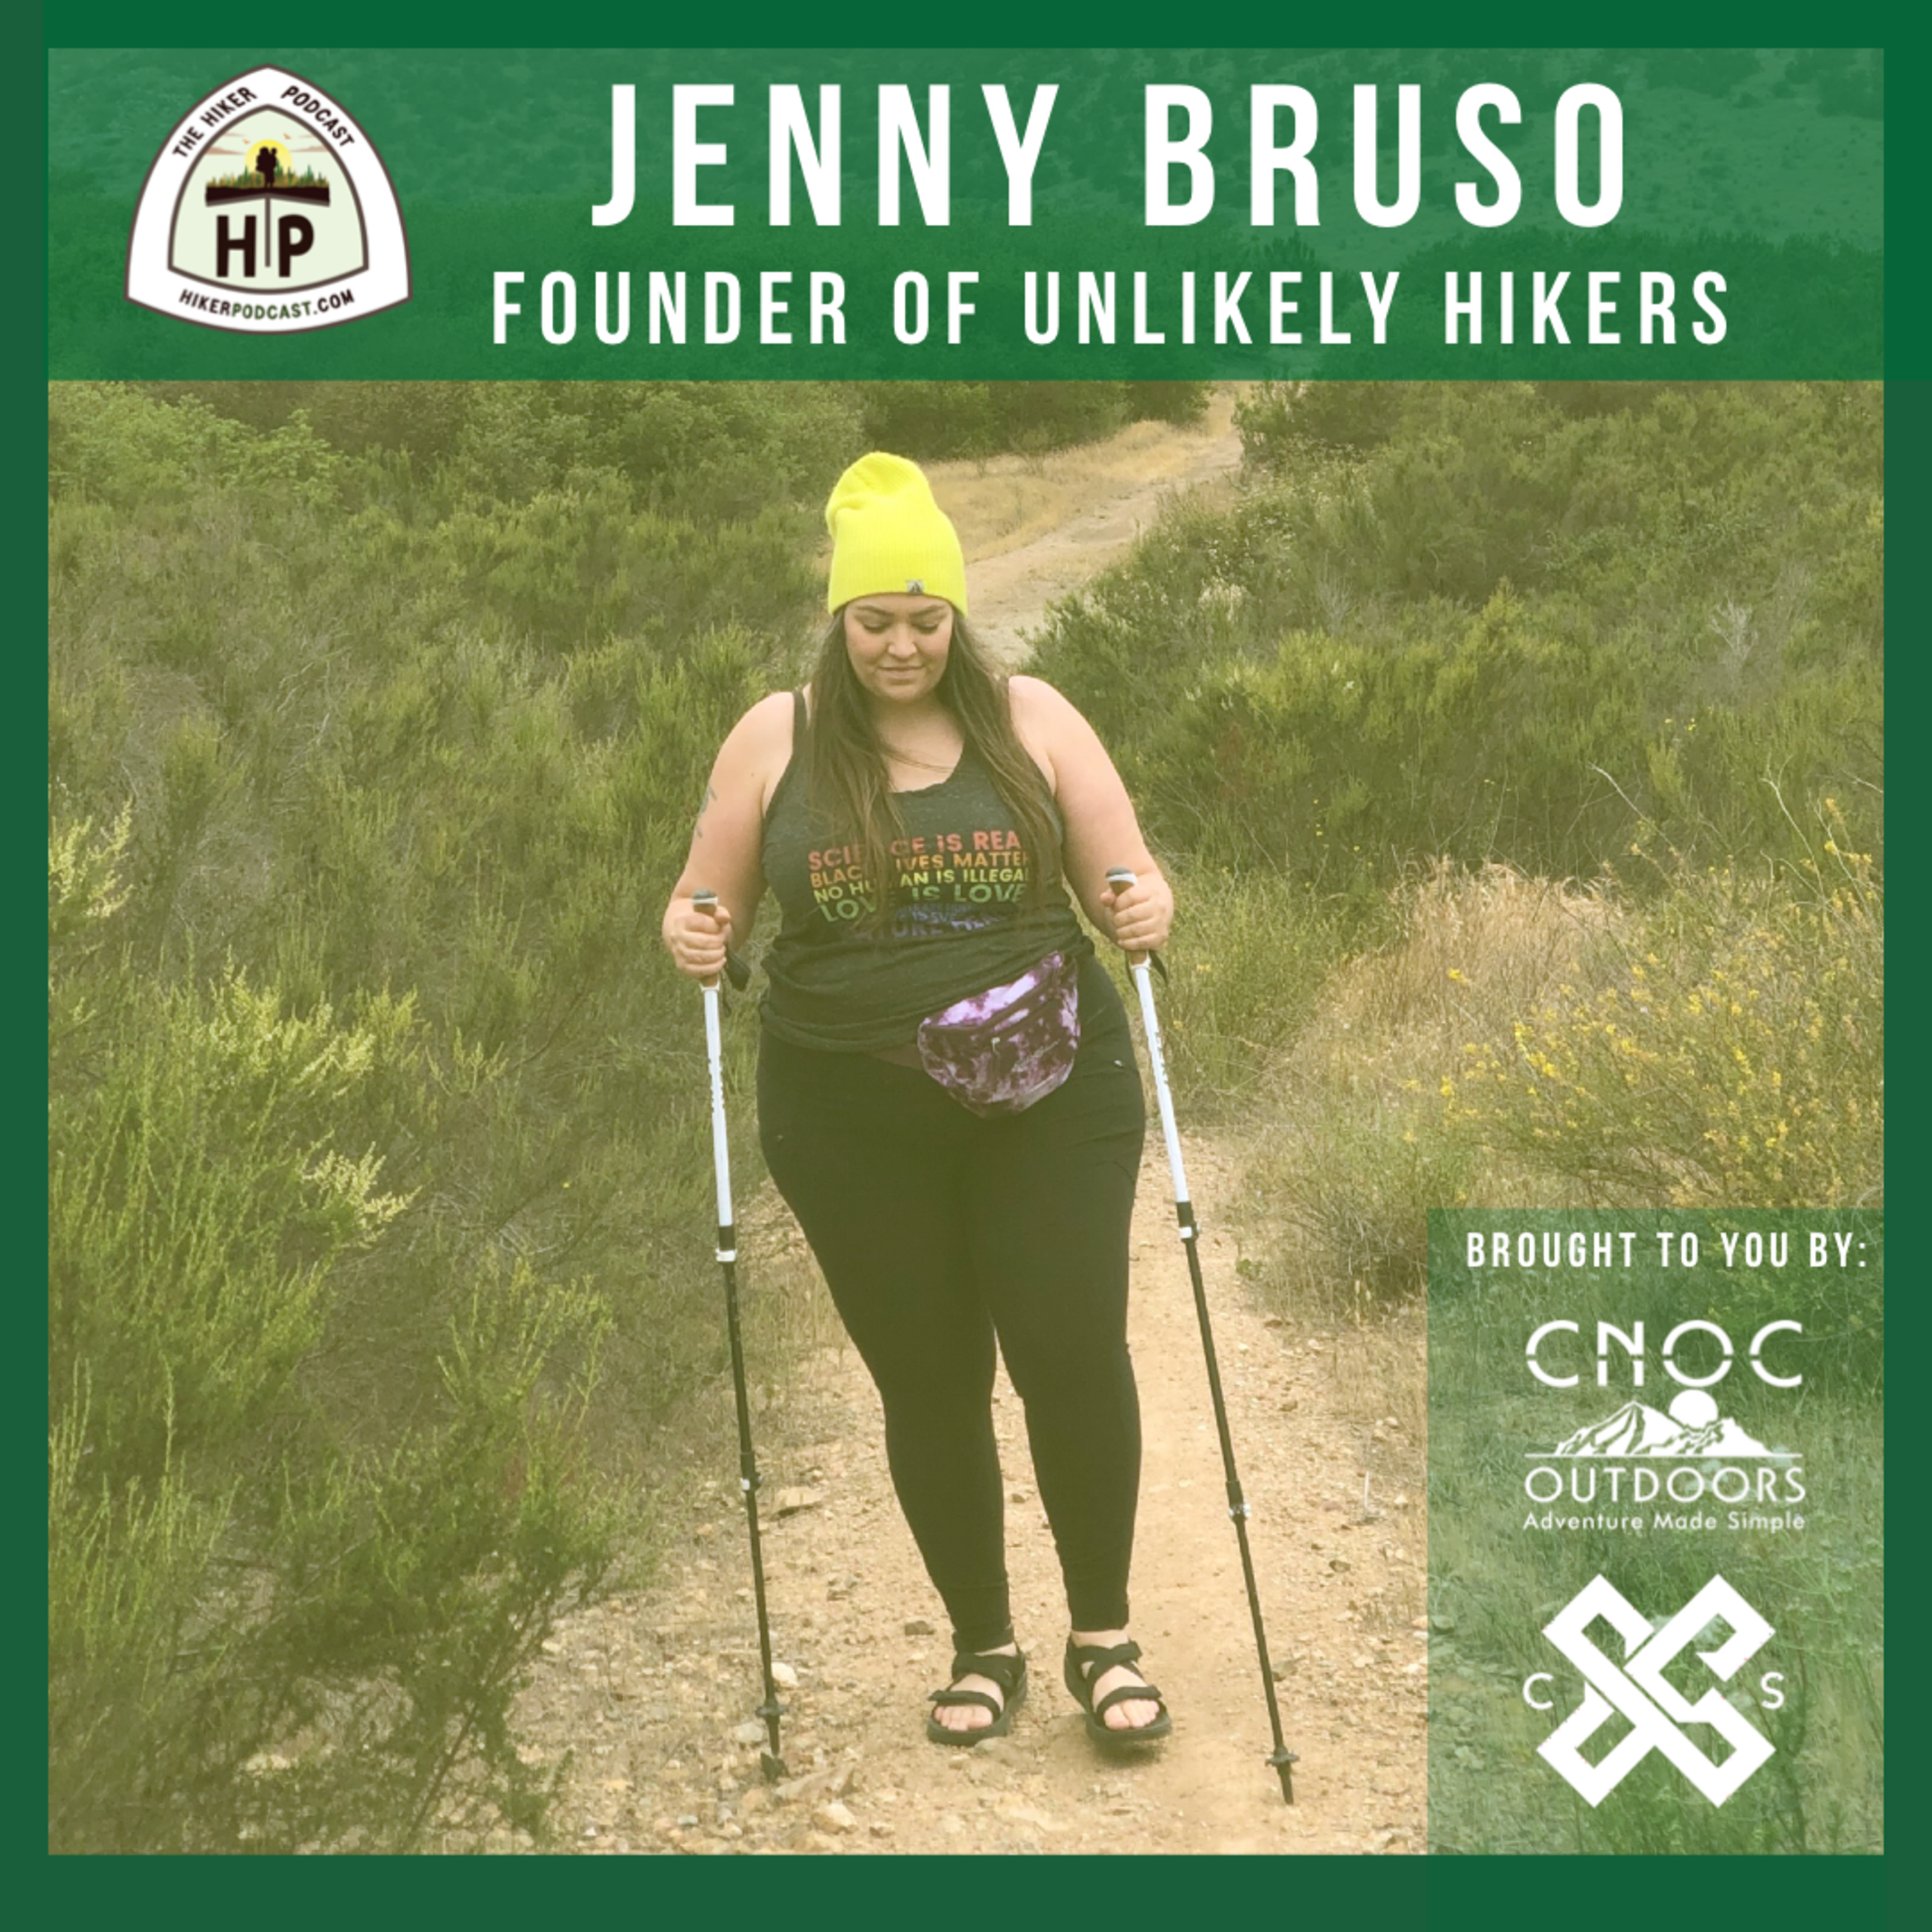 Jenny Bruso: Hiker, Advocate, & Founder of Unlikely Hikers | The Hiker Podcast S2E19